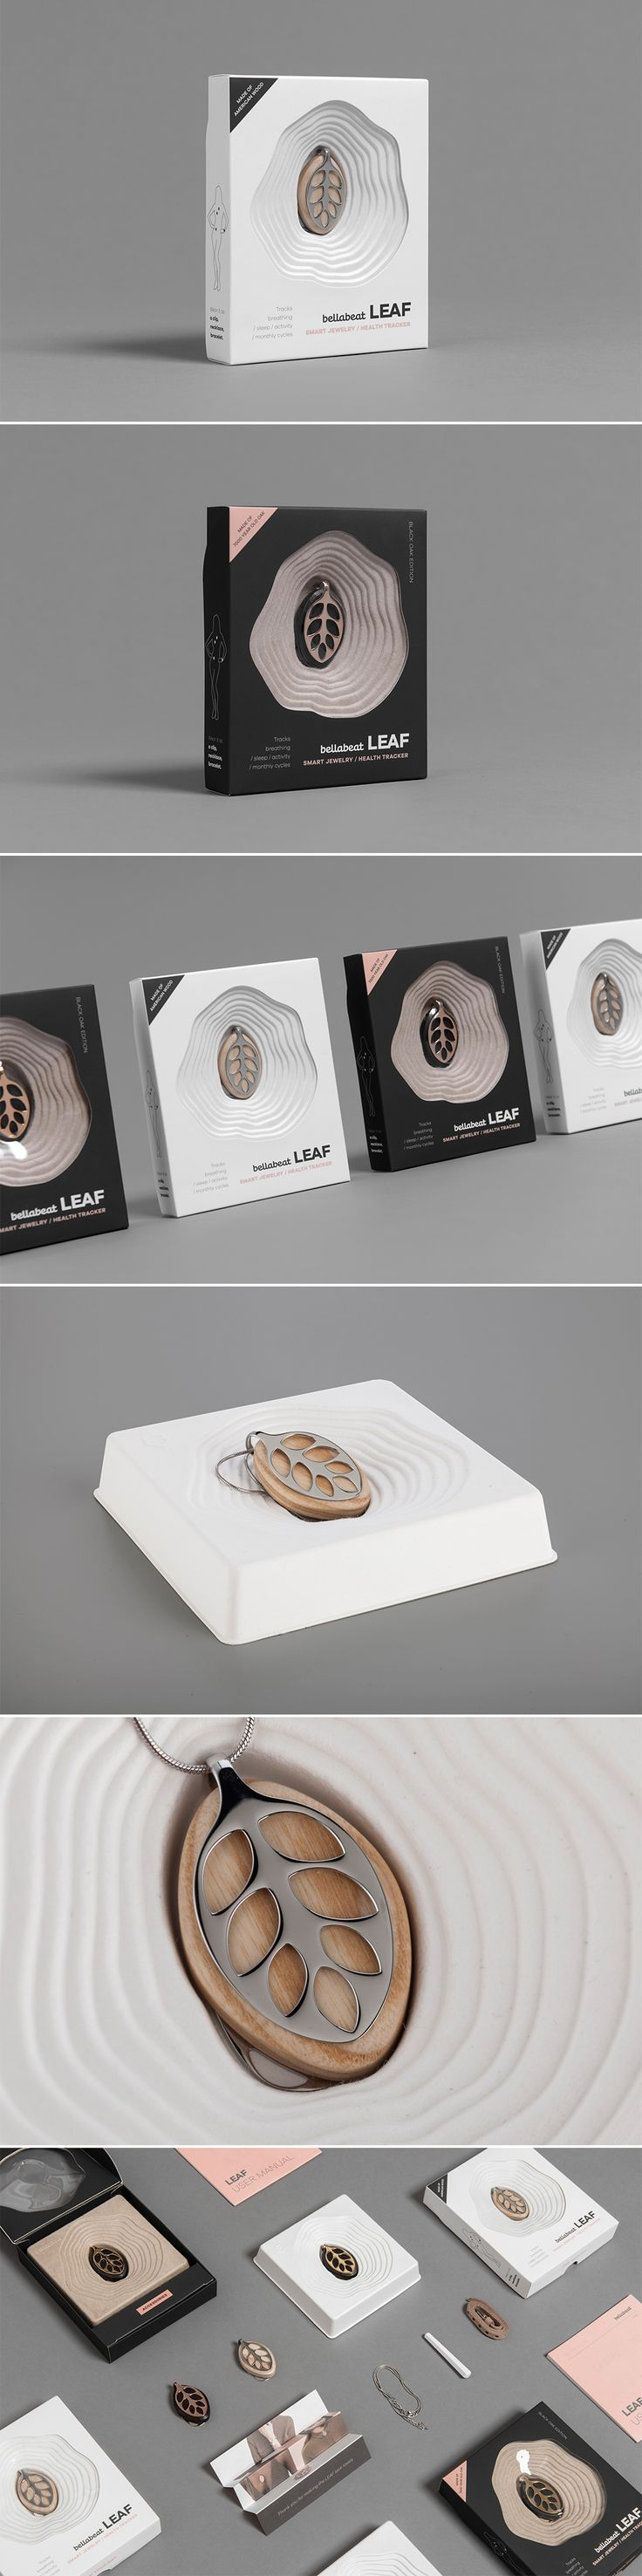 Packaging for Bellabeat LEAF - Silver Edition and Rose Gold Edition.    Product design: Urška Sršen & Urška Hvalica / Packaging design: Ana Rimac, Iva Jankov, Rebeka Vegelj. If you're a user experience professional, listen to The UX Blog Podcast on iTunes.